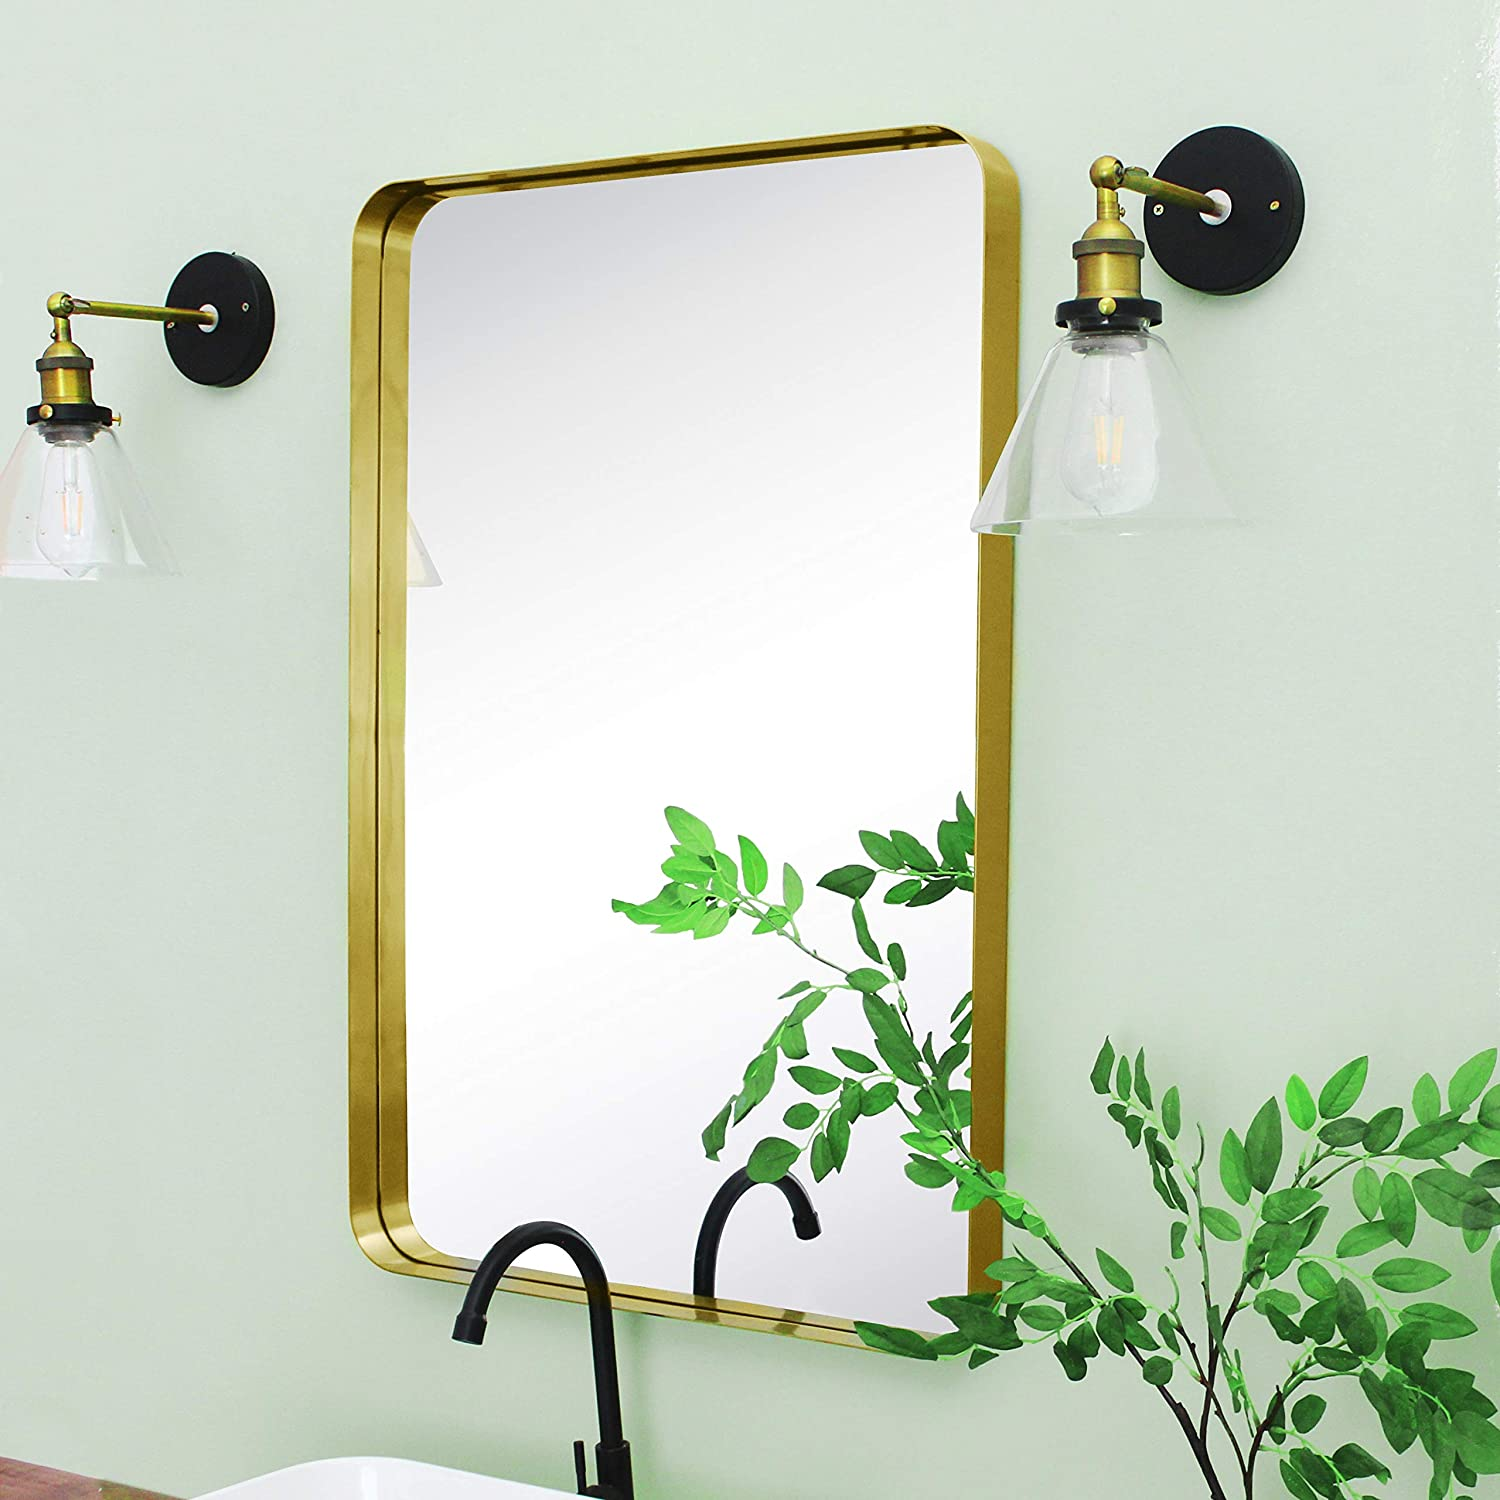 Buy Tehome 24x36 Brushed Gold Metal Framed Bathroom Mirror For Wall In Stainless Steel Rounded Rectangular Bathroom Vanity Mirrors Wall Mounted Online In Indonesia B089t6ftxl